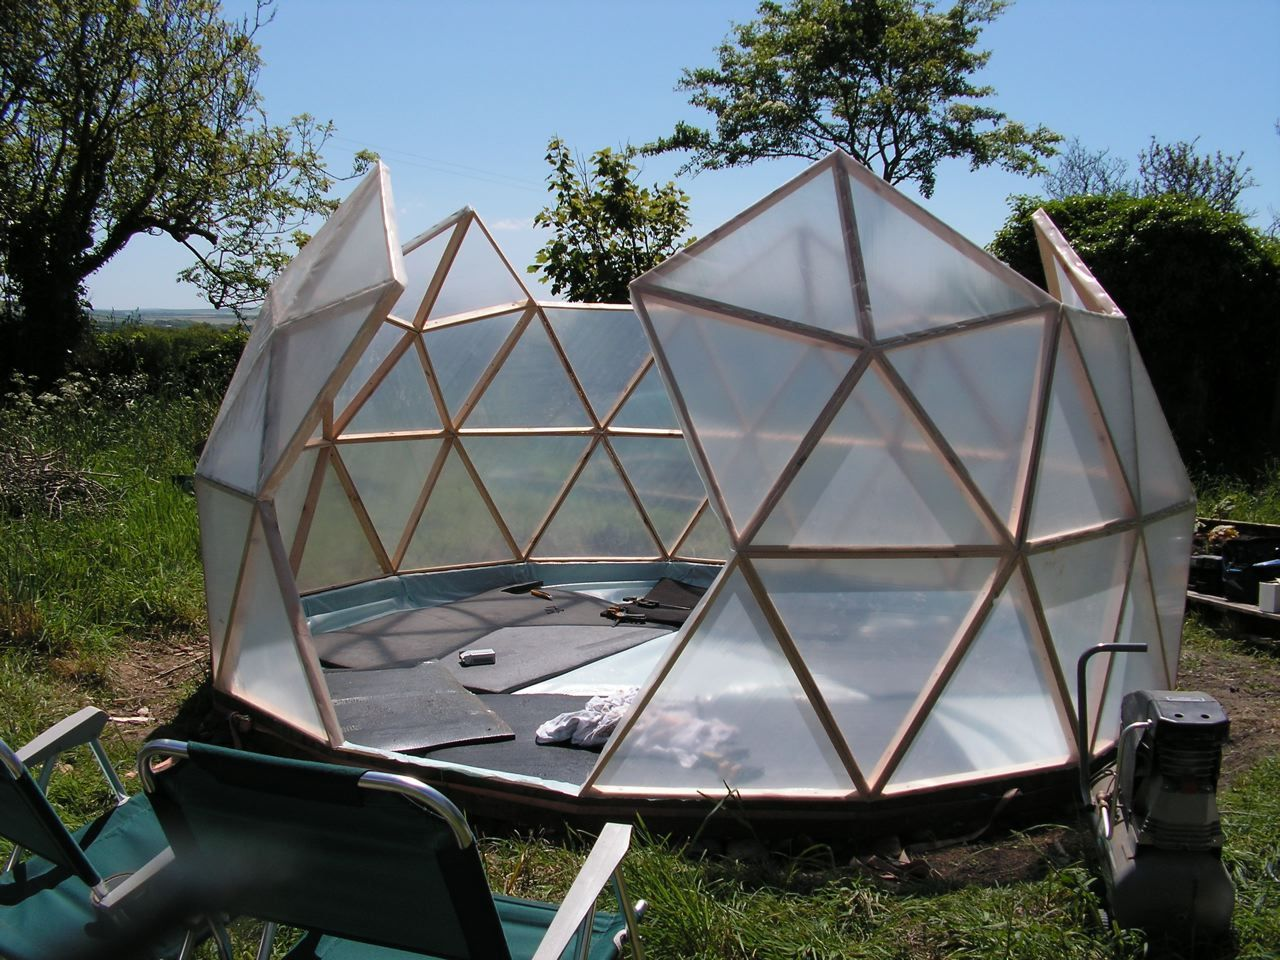 Dome greenhouse dome greenhouse gardens and green houses for Geodesic greenhouse plans free